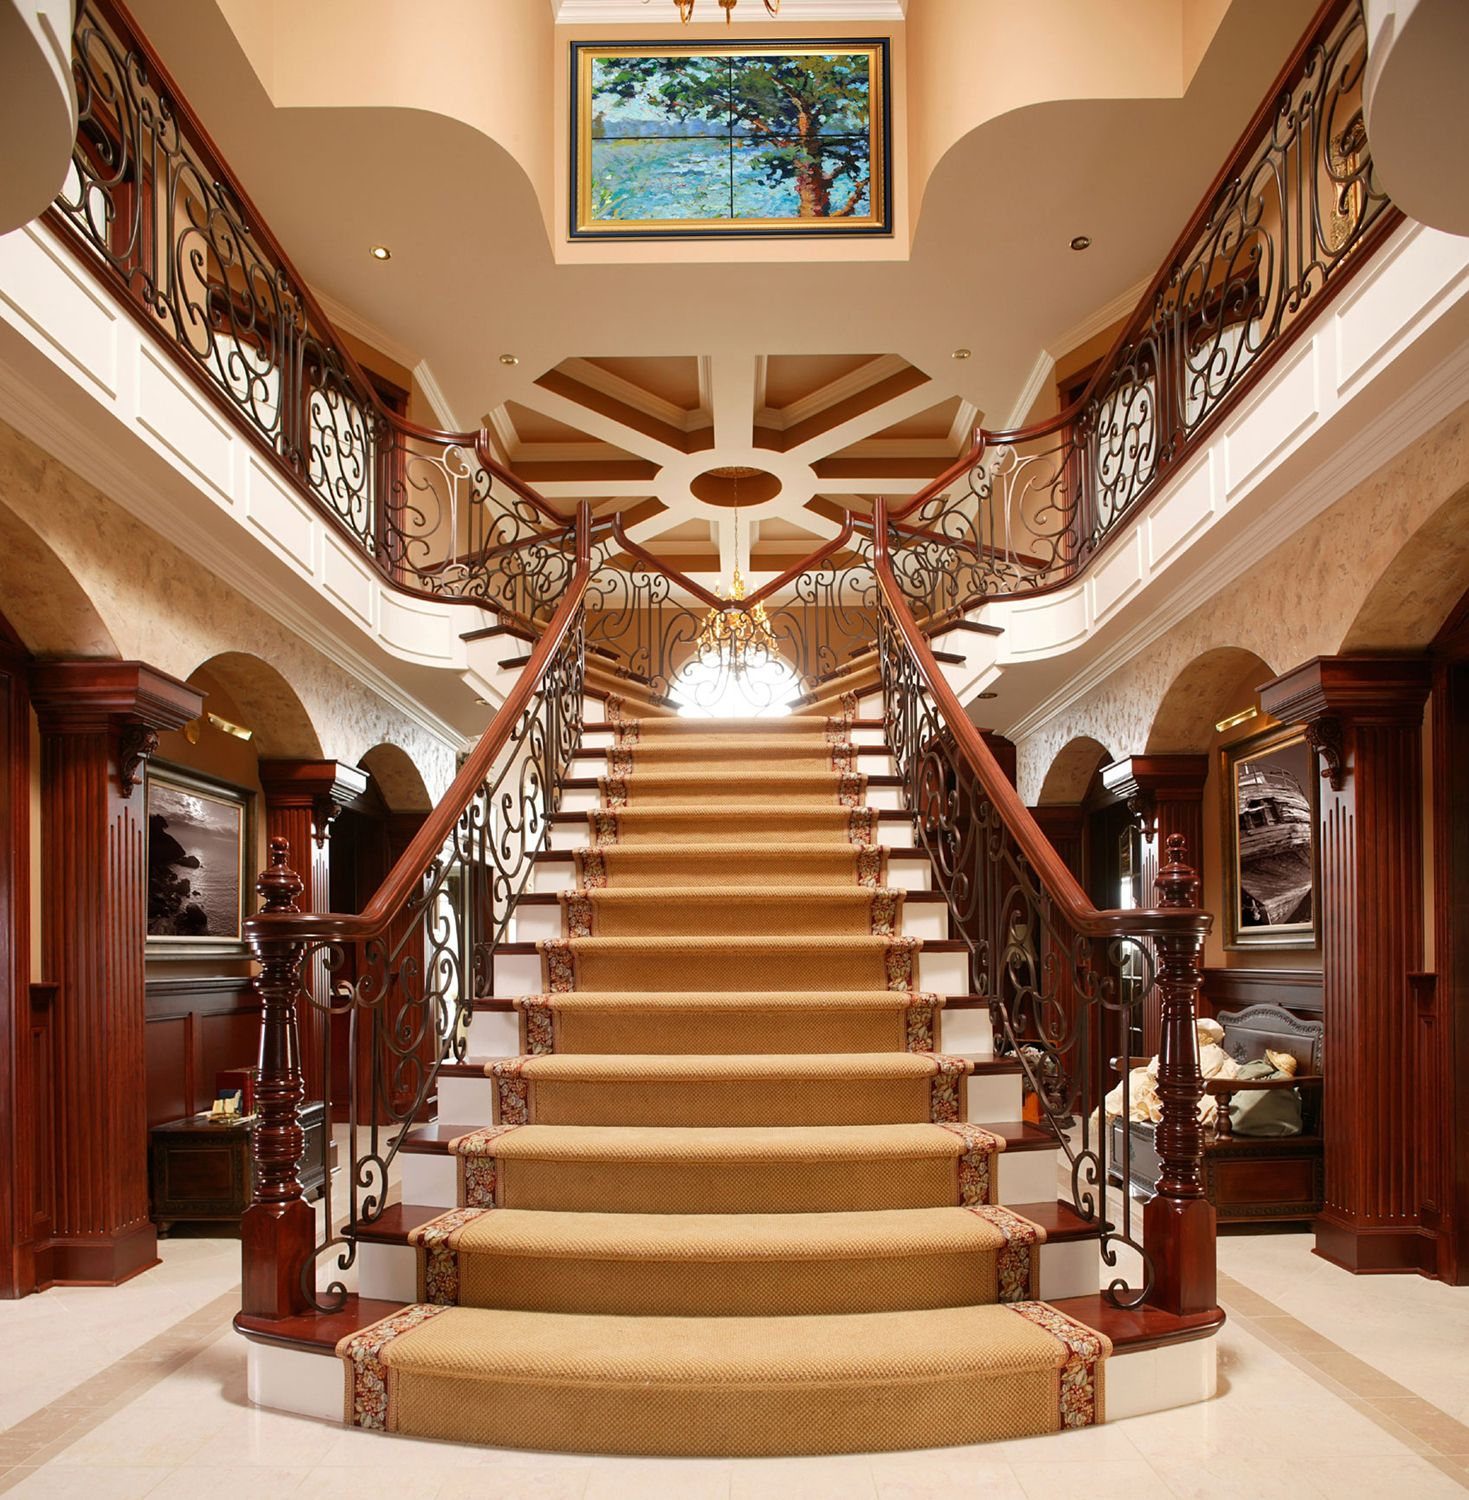 51 Stunning Staircase Design Ideas: Over 290 Different Staircase Design Ideas. Http